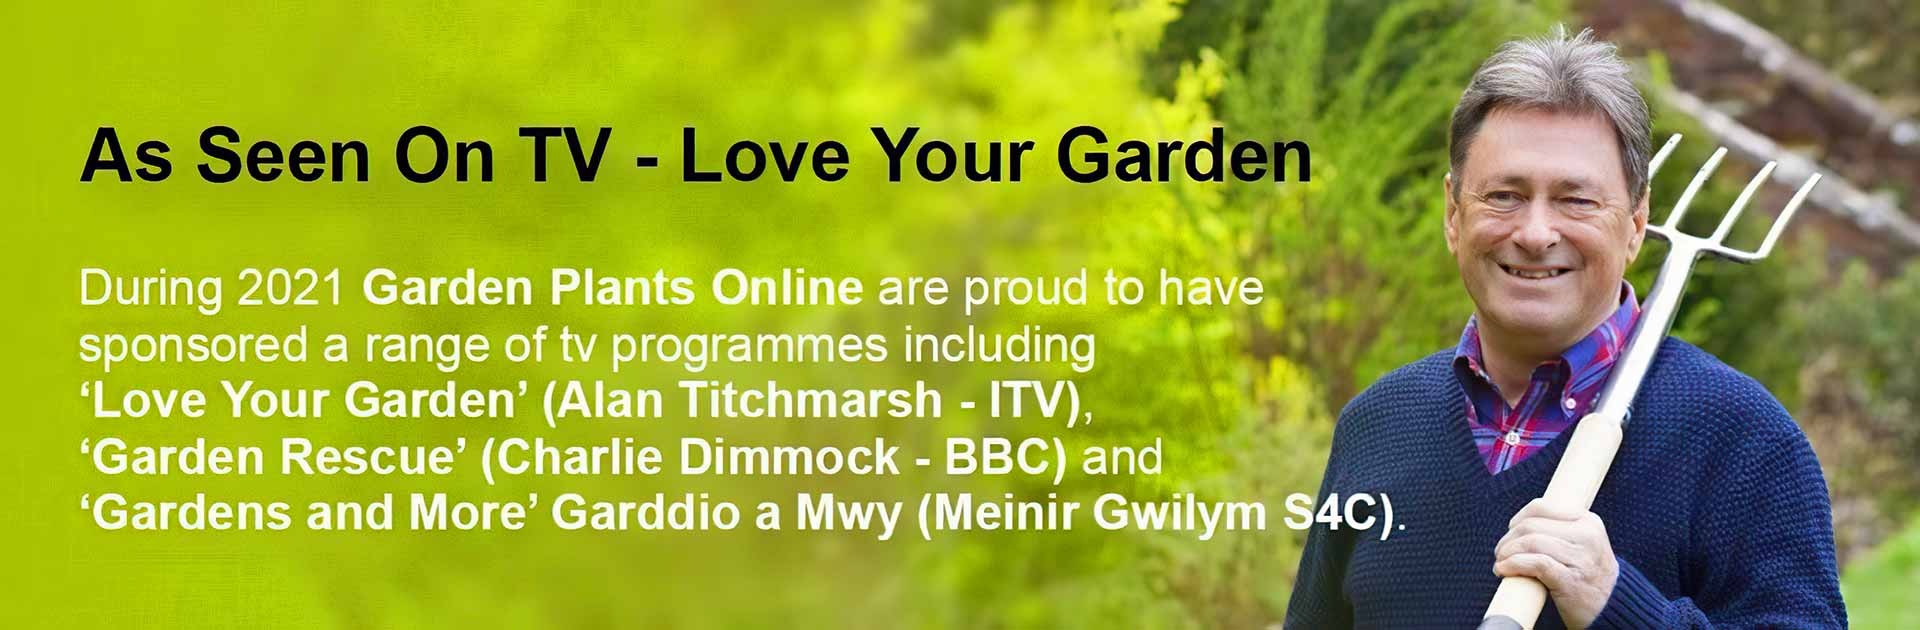 As Seen On TV - Love Your Garden. During 2021 Garden Plants Online are proud to have sponsored a range of tv programmes including 'Love Your Garden' (Alan Titchmarsh - ITV), 'Garden Rescue' (Charlie Dimmock - BBC) and 'Gardens and More' Garddio a Mwy (Meinir Gwilym S4C).